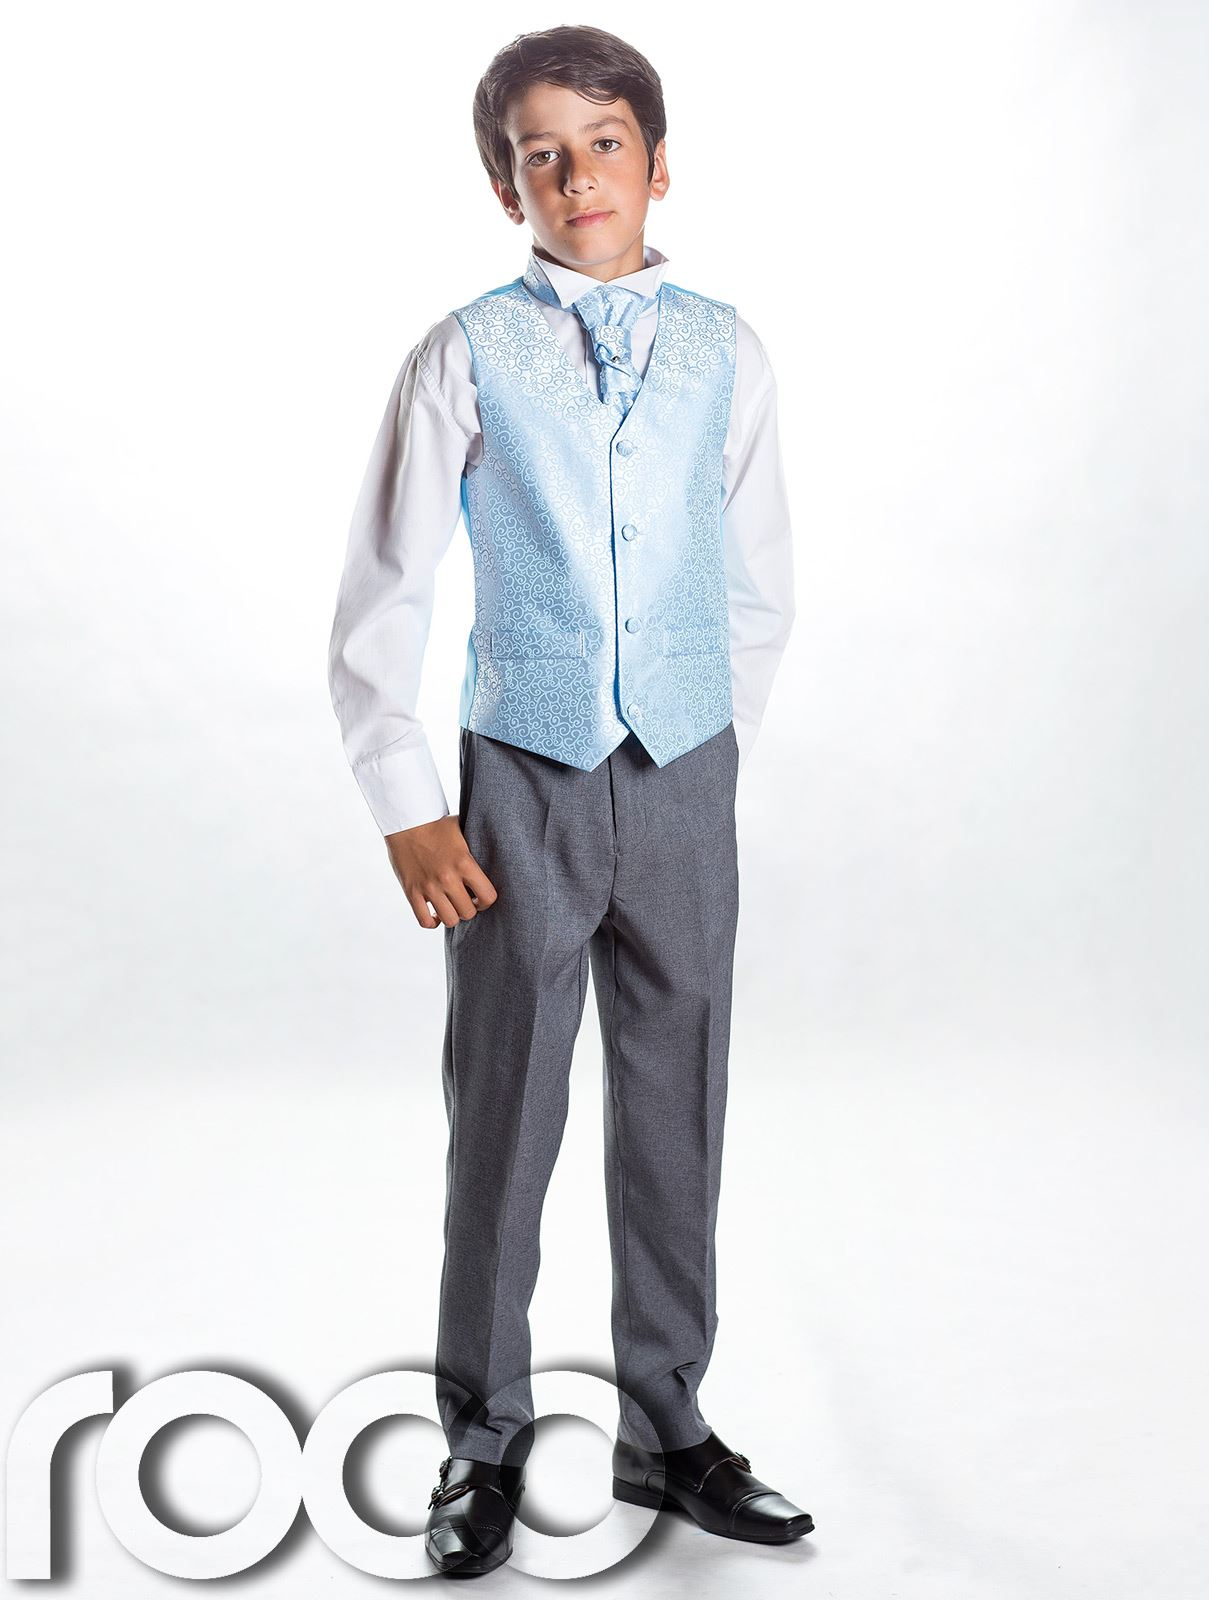 Not only this our versatile collection for boys suits contains boy's christening suits for the memorable occasion also this suits come in a variety of pieces such as Boys 3 piece suits, Boys 4 piece suits and Boys 5 piece suits.